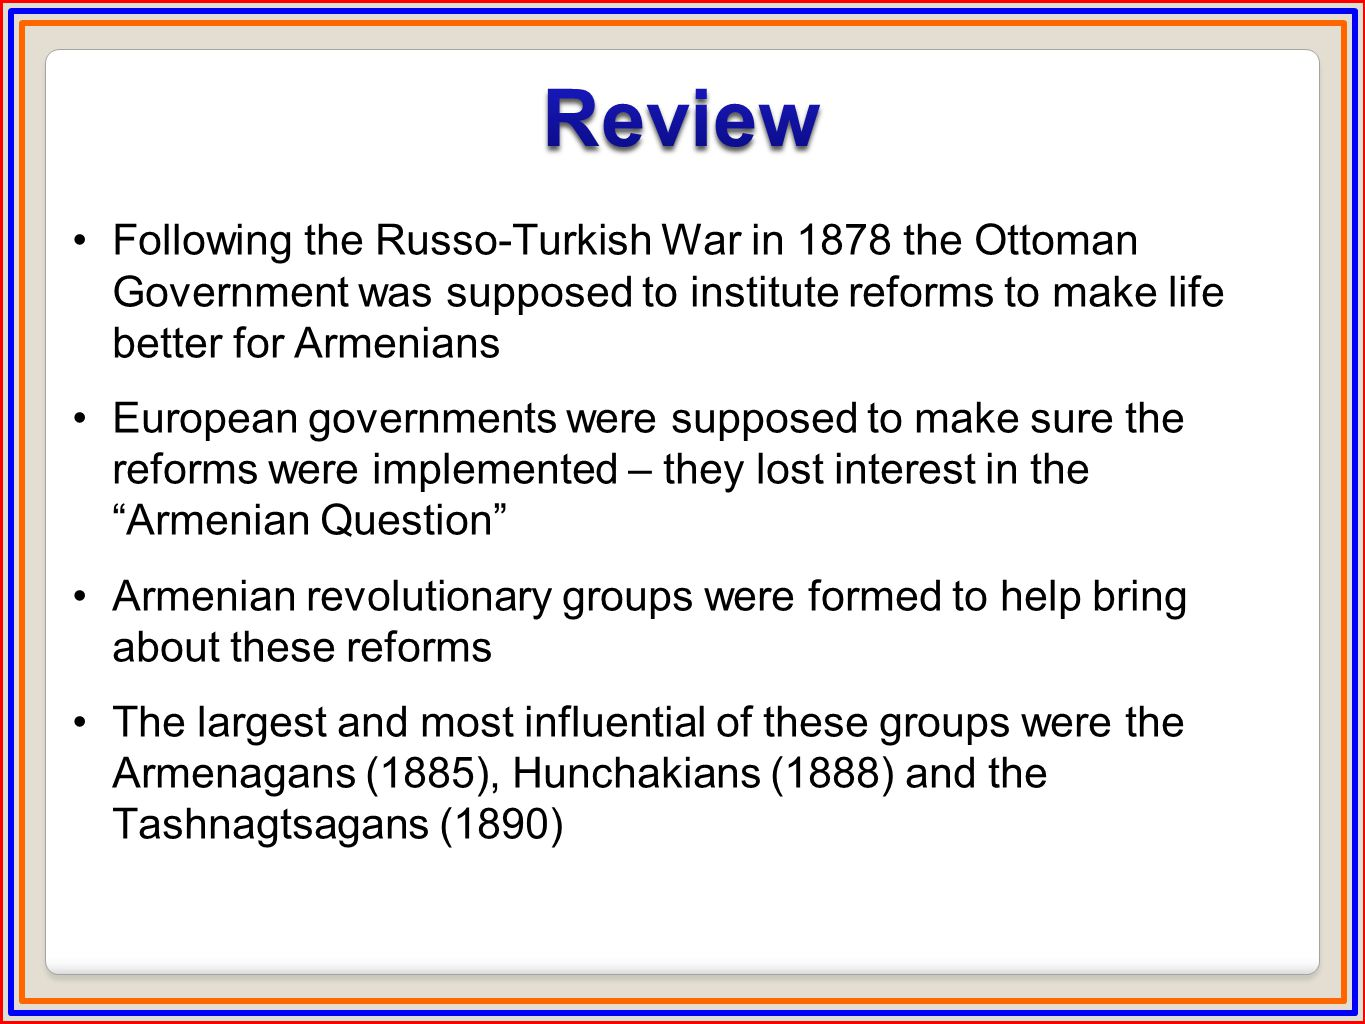 The Hamidian Massacres from 1894-96, and the harsh conditions which preceded them, caused many Armenians to flee to other countries, including the US The Hamidian Massacres caused Americans to learn about Armenia, and many influential Americans took up the cause, including Clara Barton founder of the American Red Cross Julia Ward Howe, author of the Battle Hymn of the Republic Diplomats, prominent writers, governors, etc Set the stage for the Armenian Genocide 20 years later